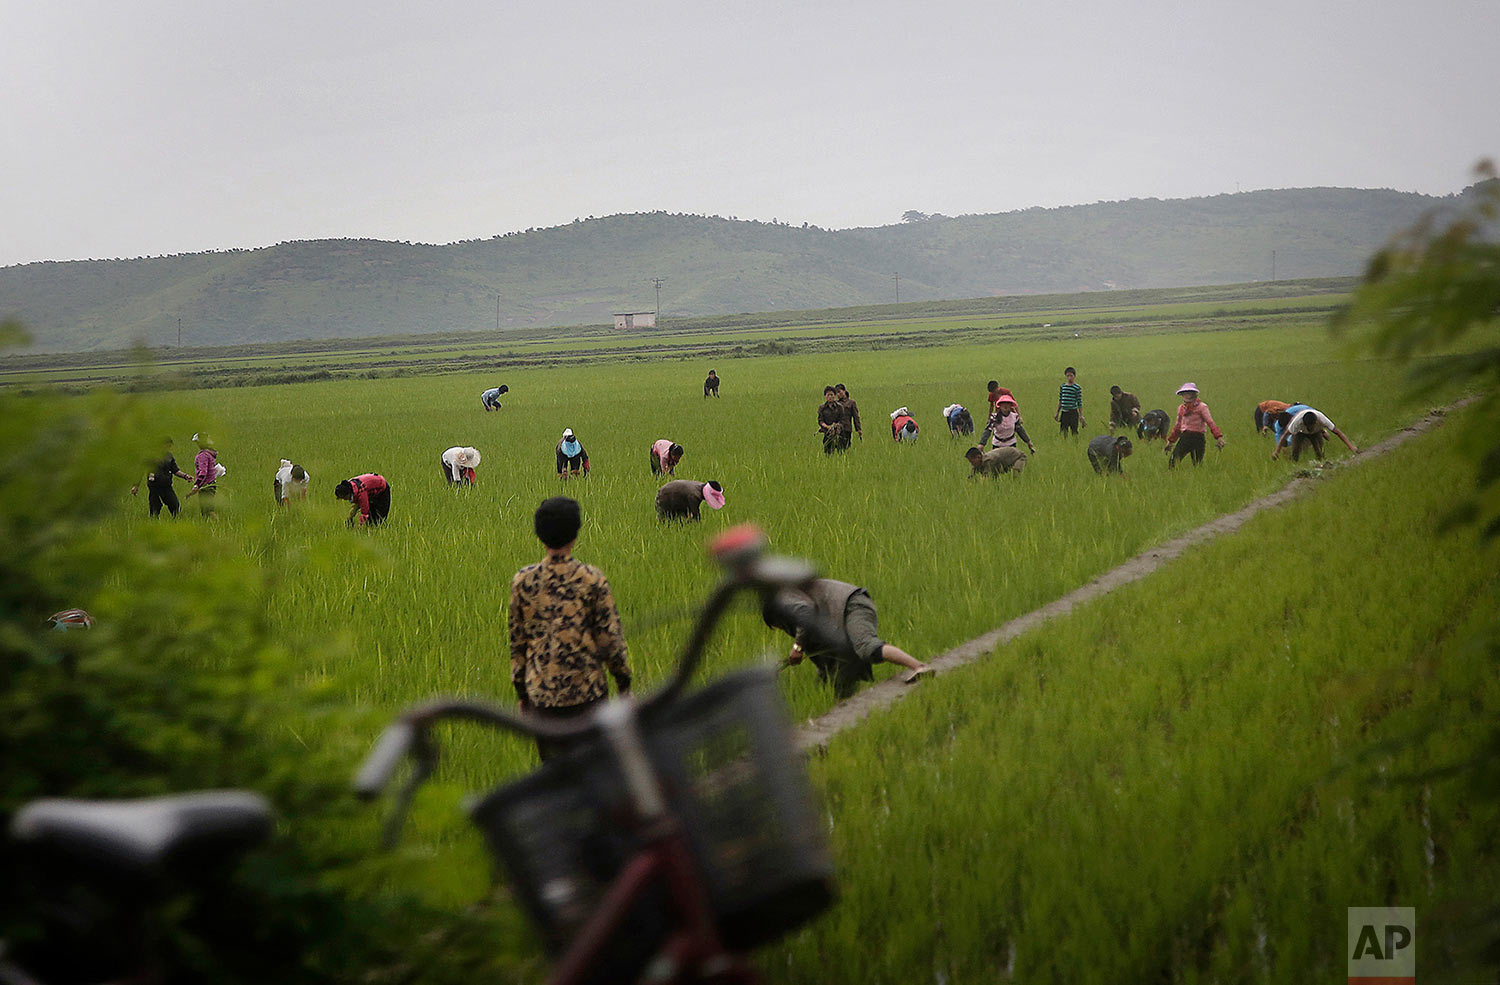 Men and women work in a rice field in Kangwon province, eastern North Korea, on June 23, 2016. The capital of Kangwon province is Wonsan, which is located along the eastern side of the Korean Peninsula and was one of the cities chosen to be developed into a summer destination for locals and tourists. (AP Photo/Wong Maye-E)